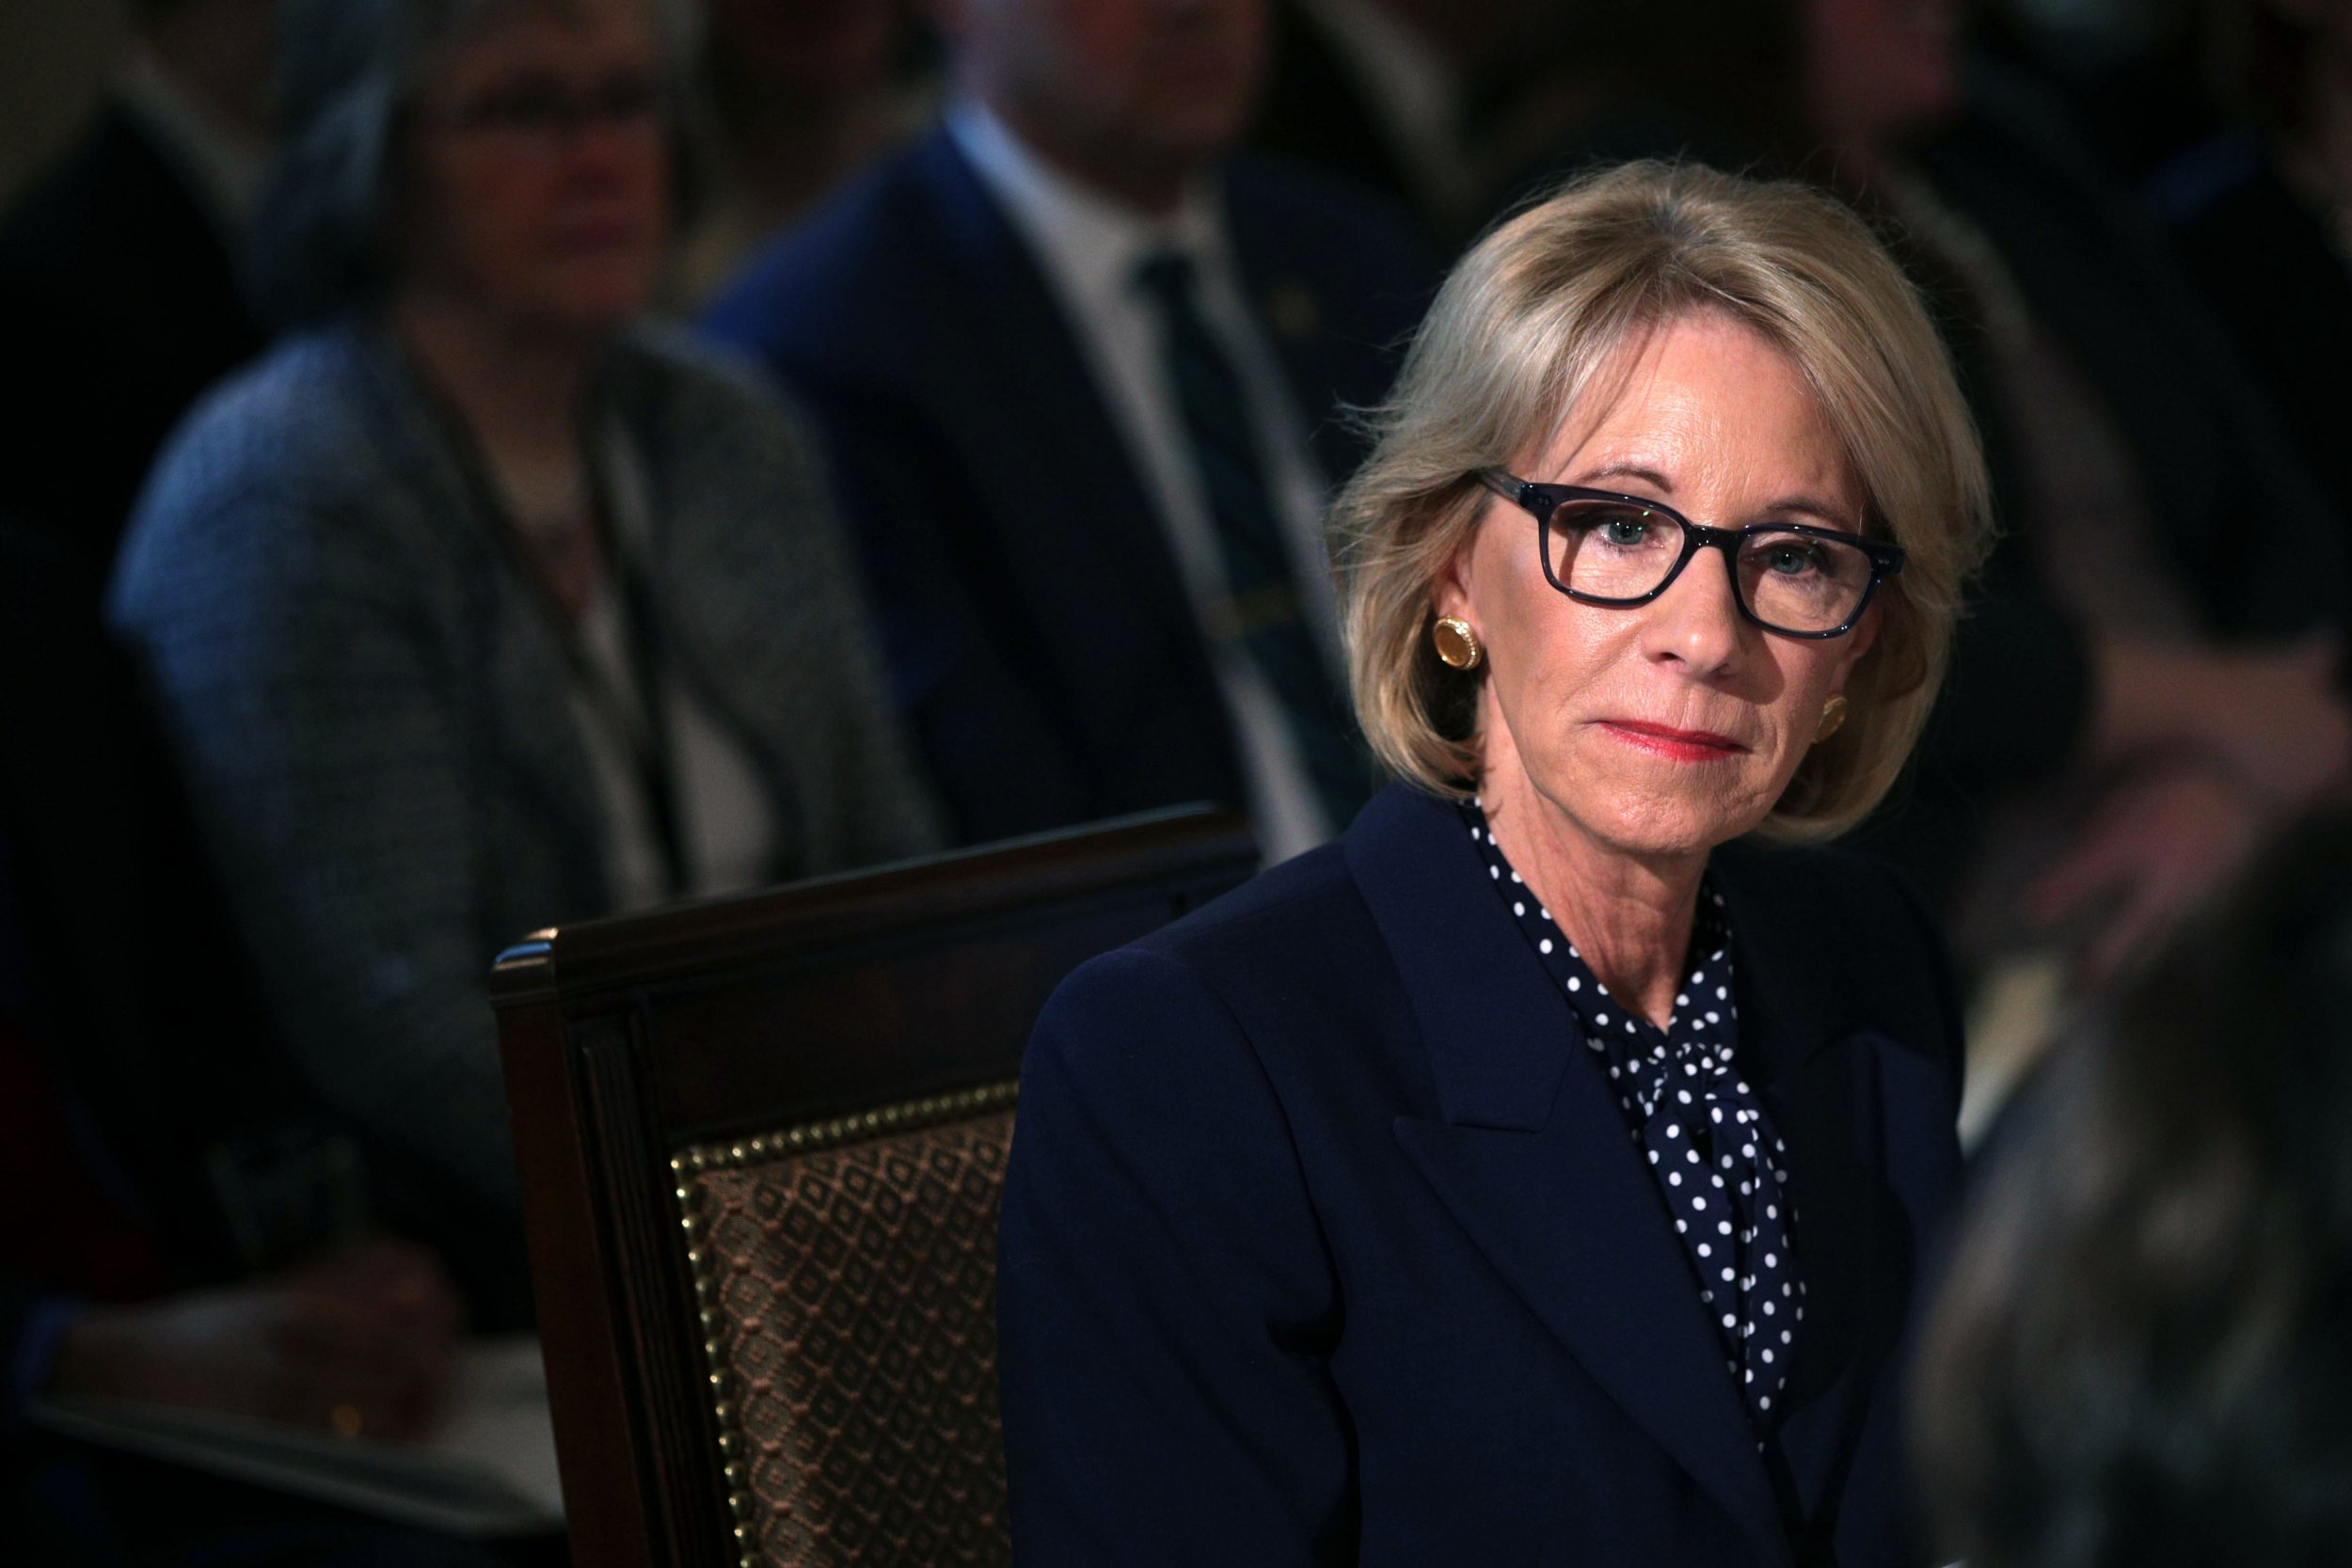 d8c4fda0 Twitter Reacts to Betsy DeVos' Proposed Budget Cuts to Special Olympics:  'More Like Betsy DeVoid of Basic Human Empathy'